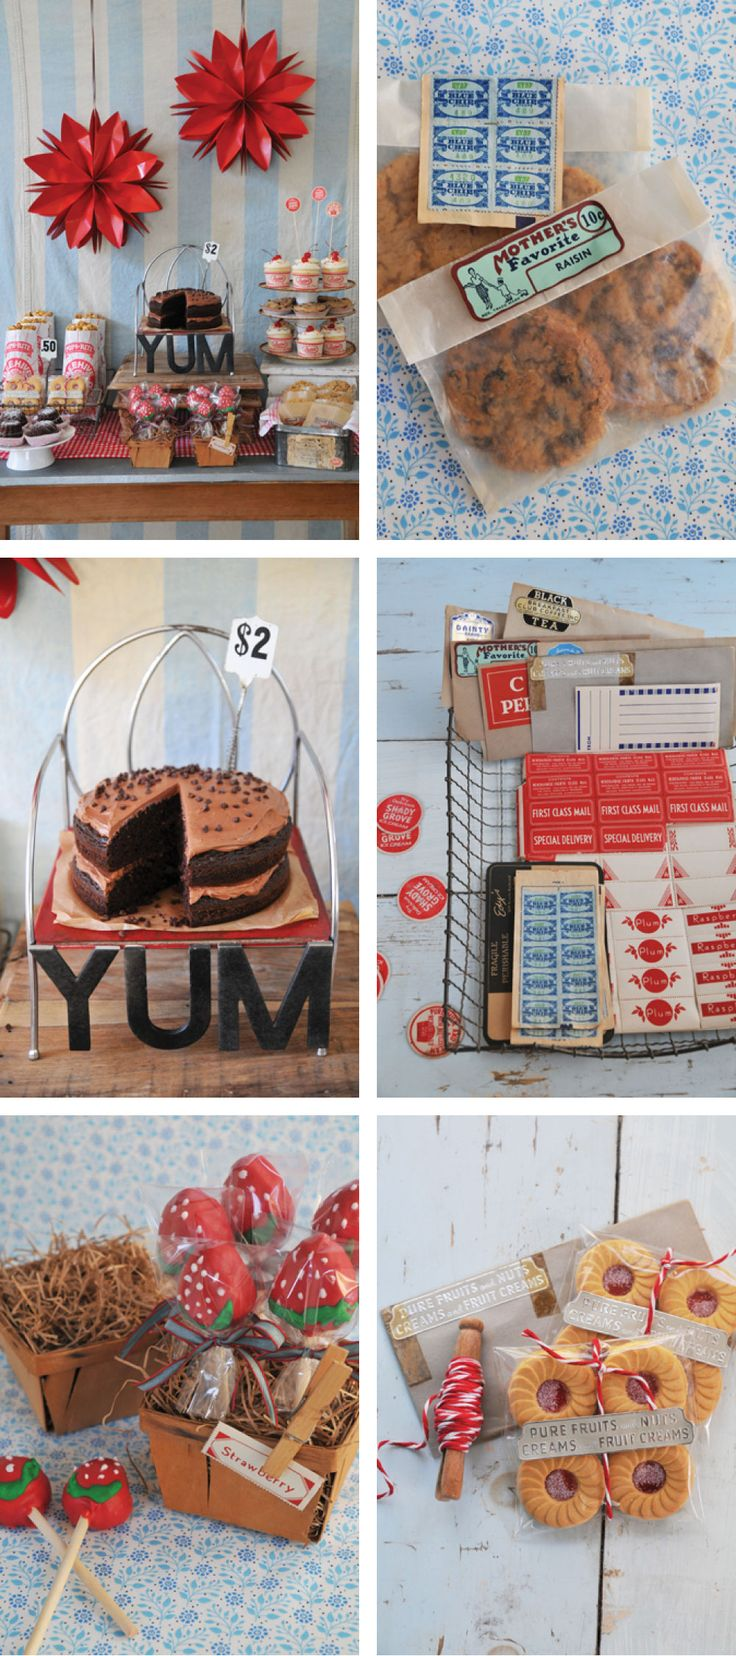 17 best images about bake and fundraising ideas 17 best images about bake and fundraising ideas bake ideas packaging ideas and bake